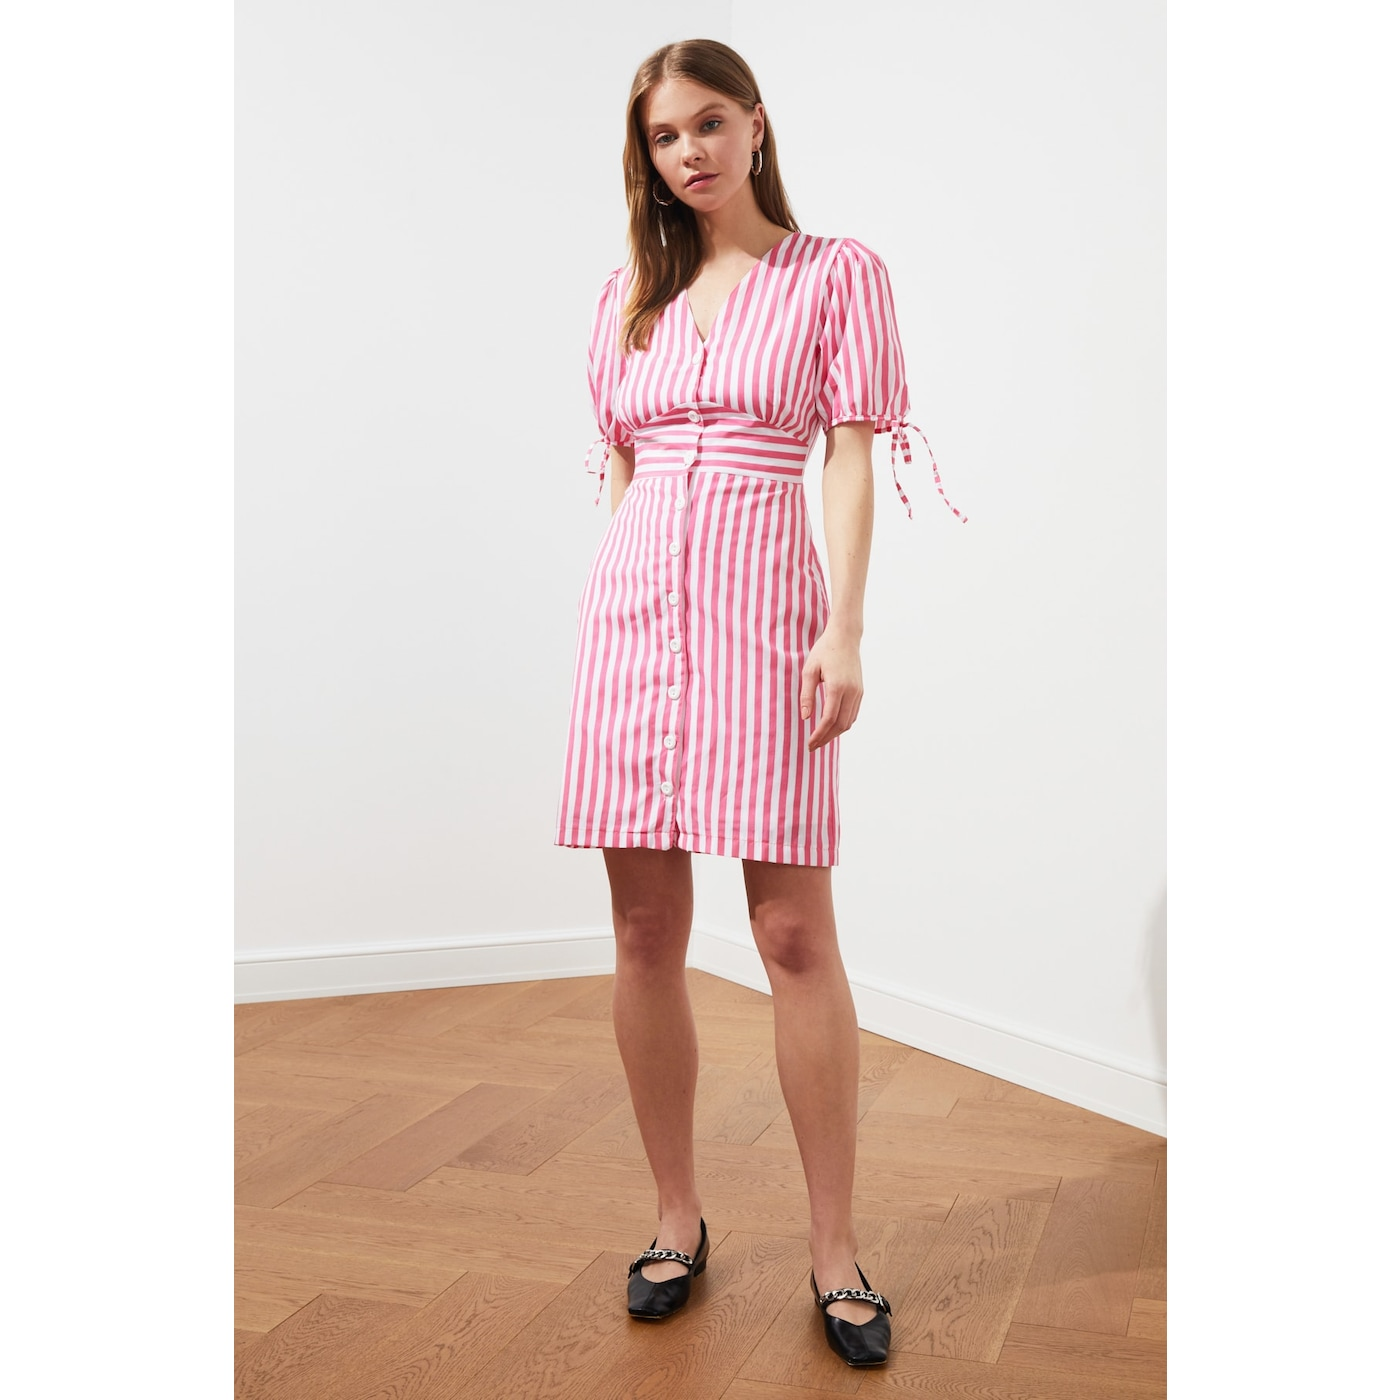 Trendyol Pink Striped Shirt Dress dámské 38